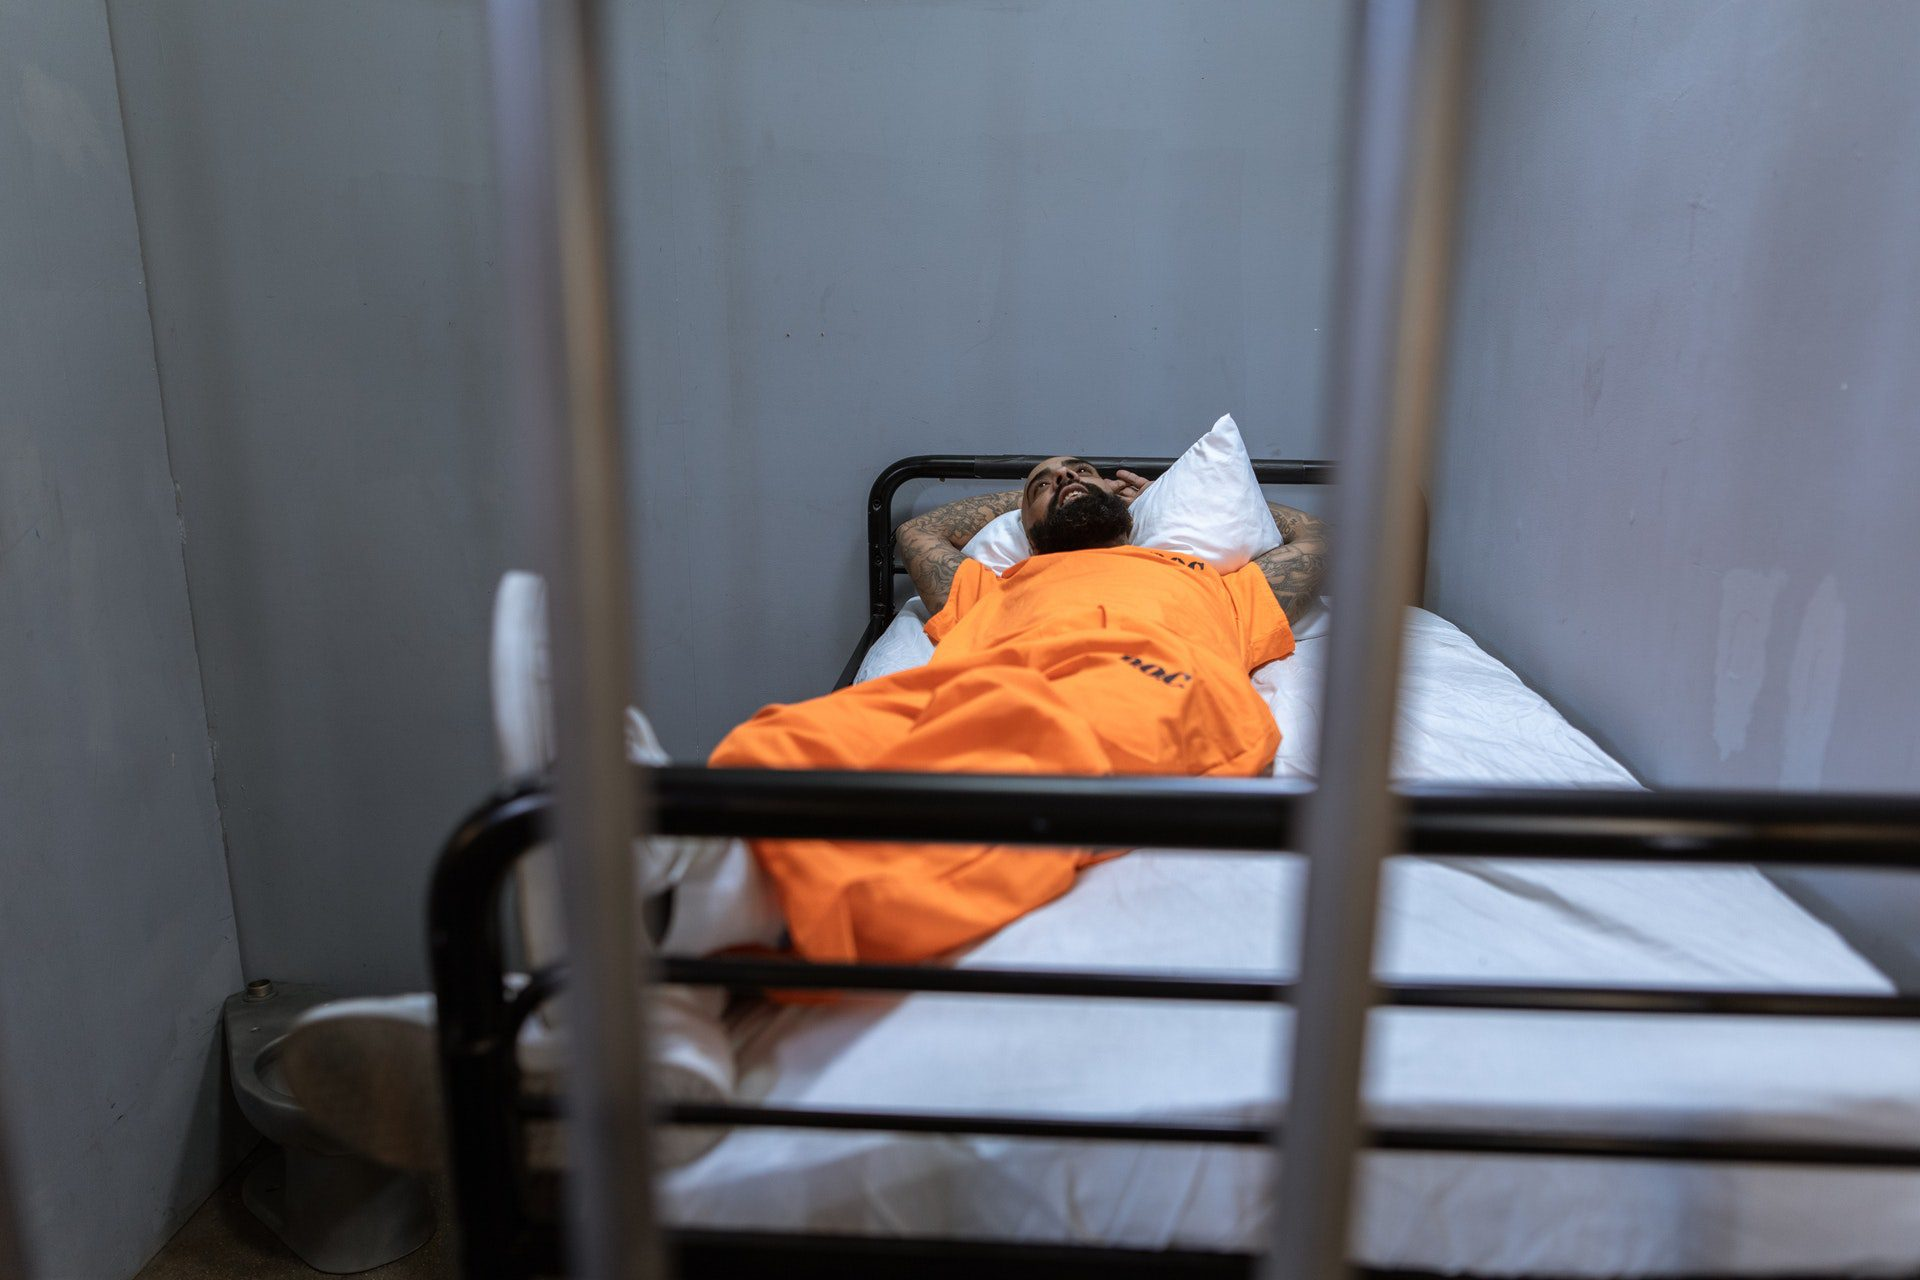 What rights do you have in supermax prisons?